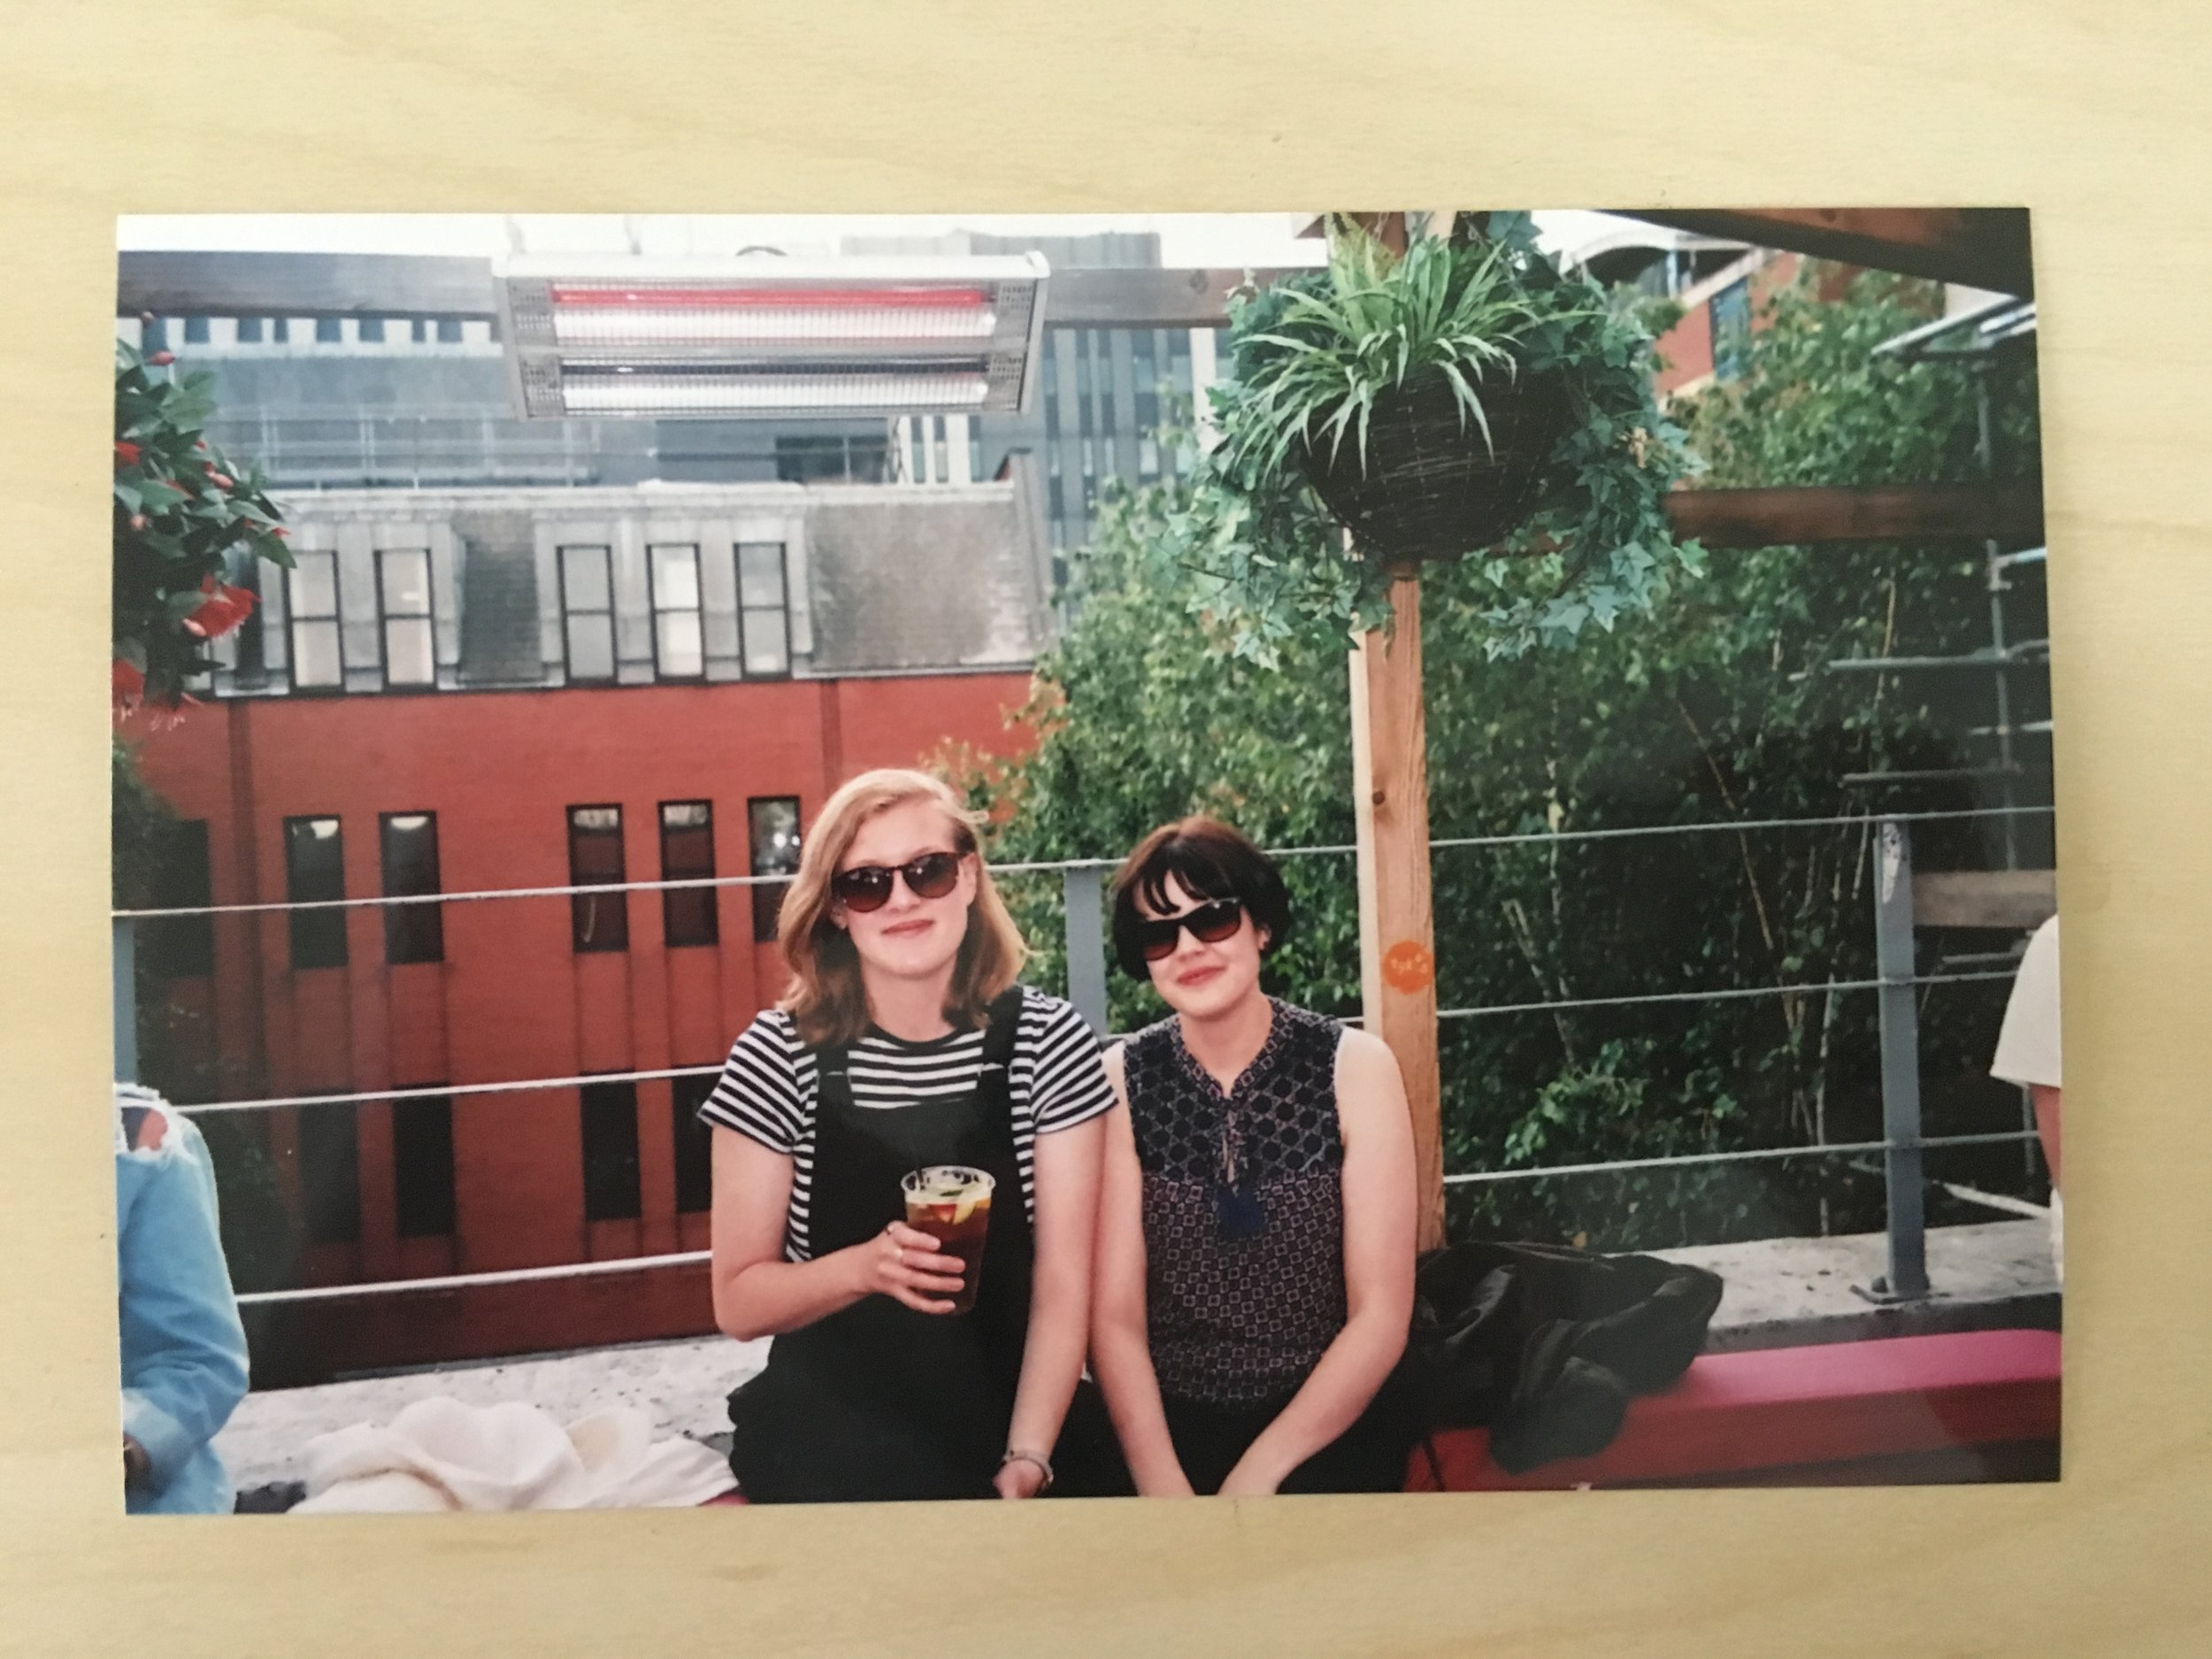 Took my first trip to Leeds in June. I loved the city and this roof top terrace.